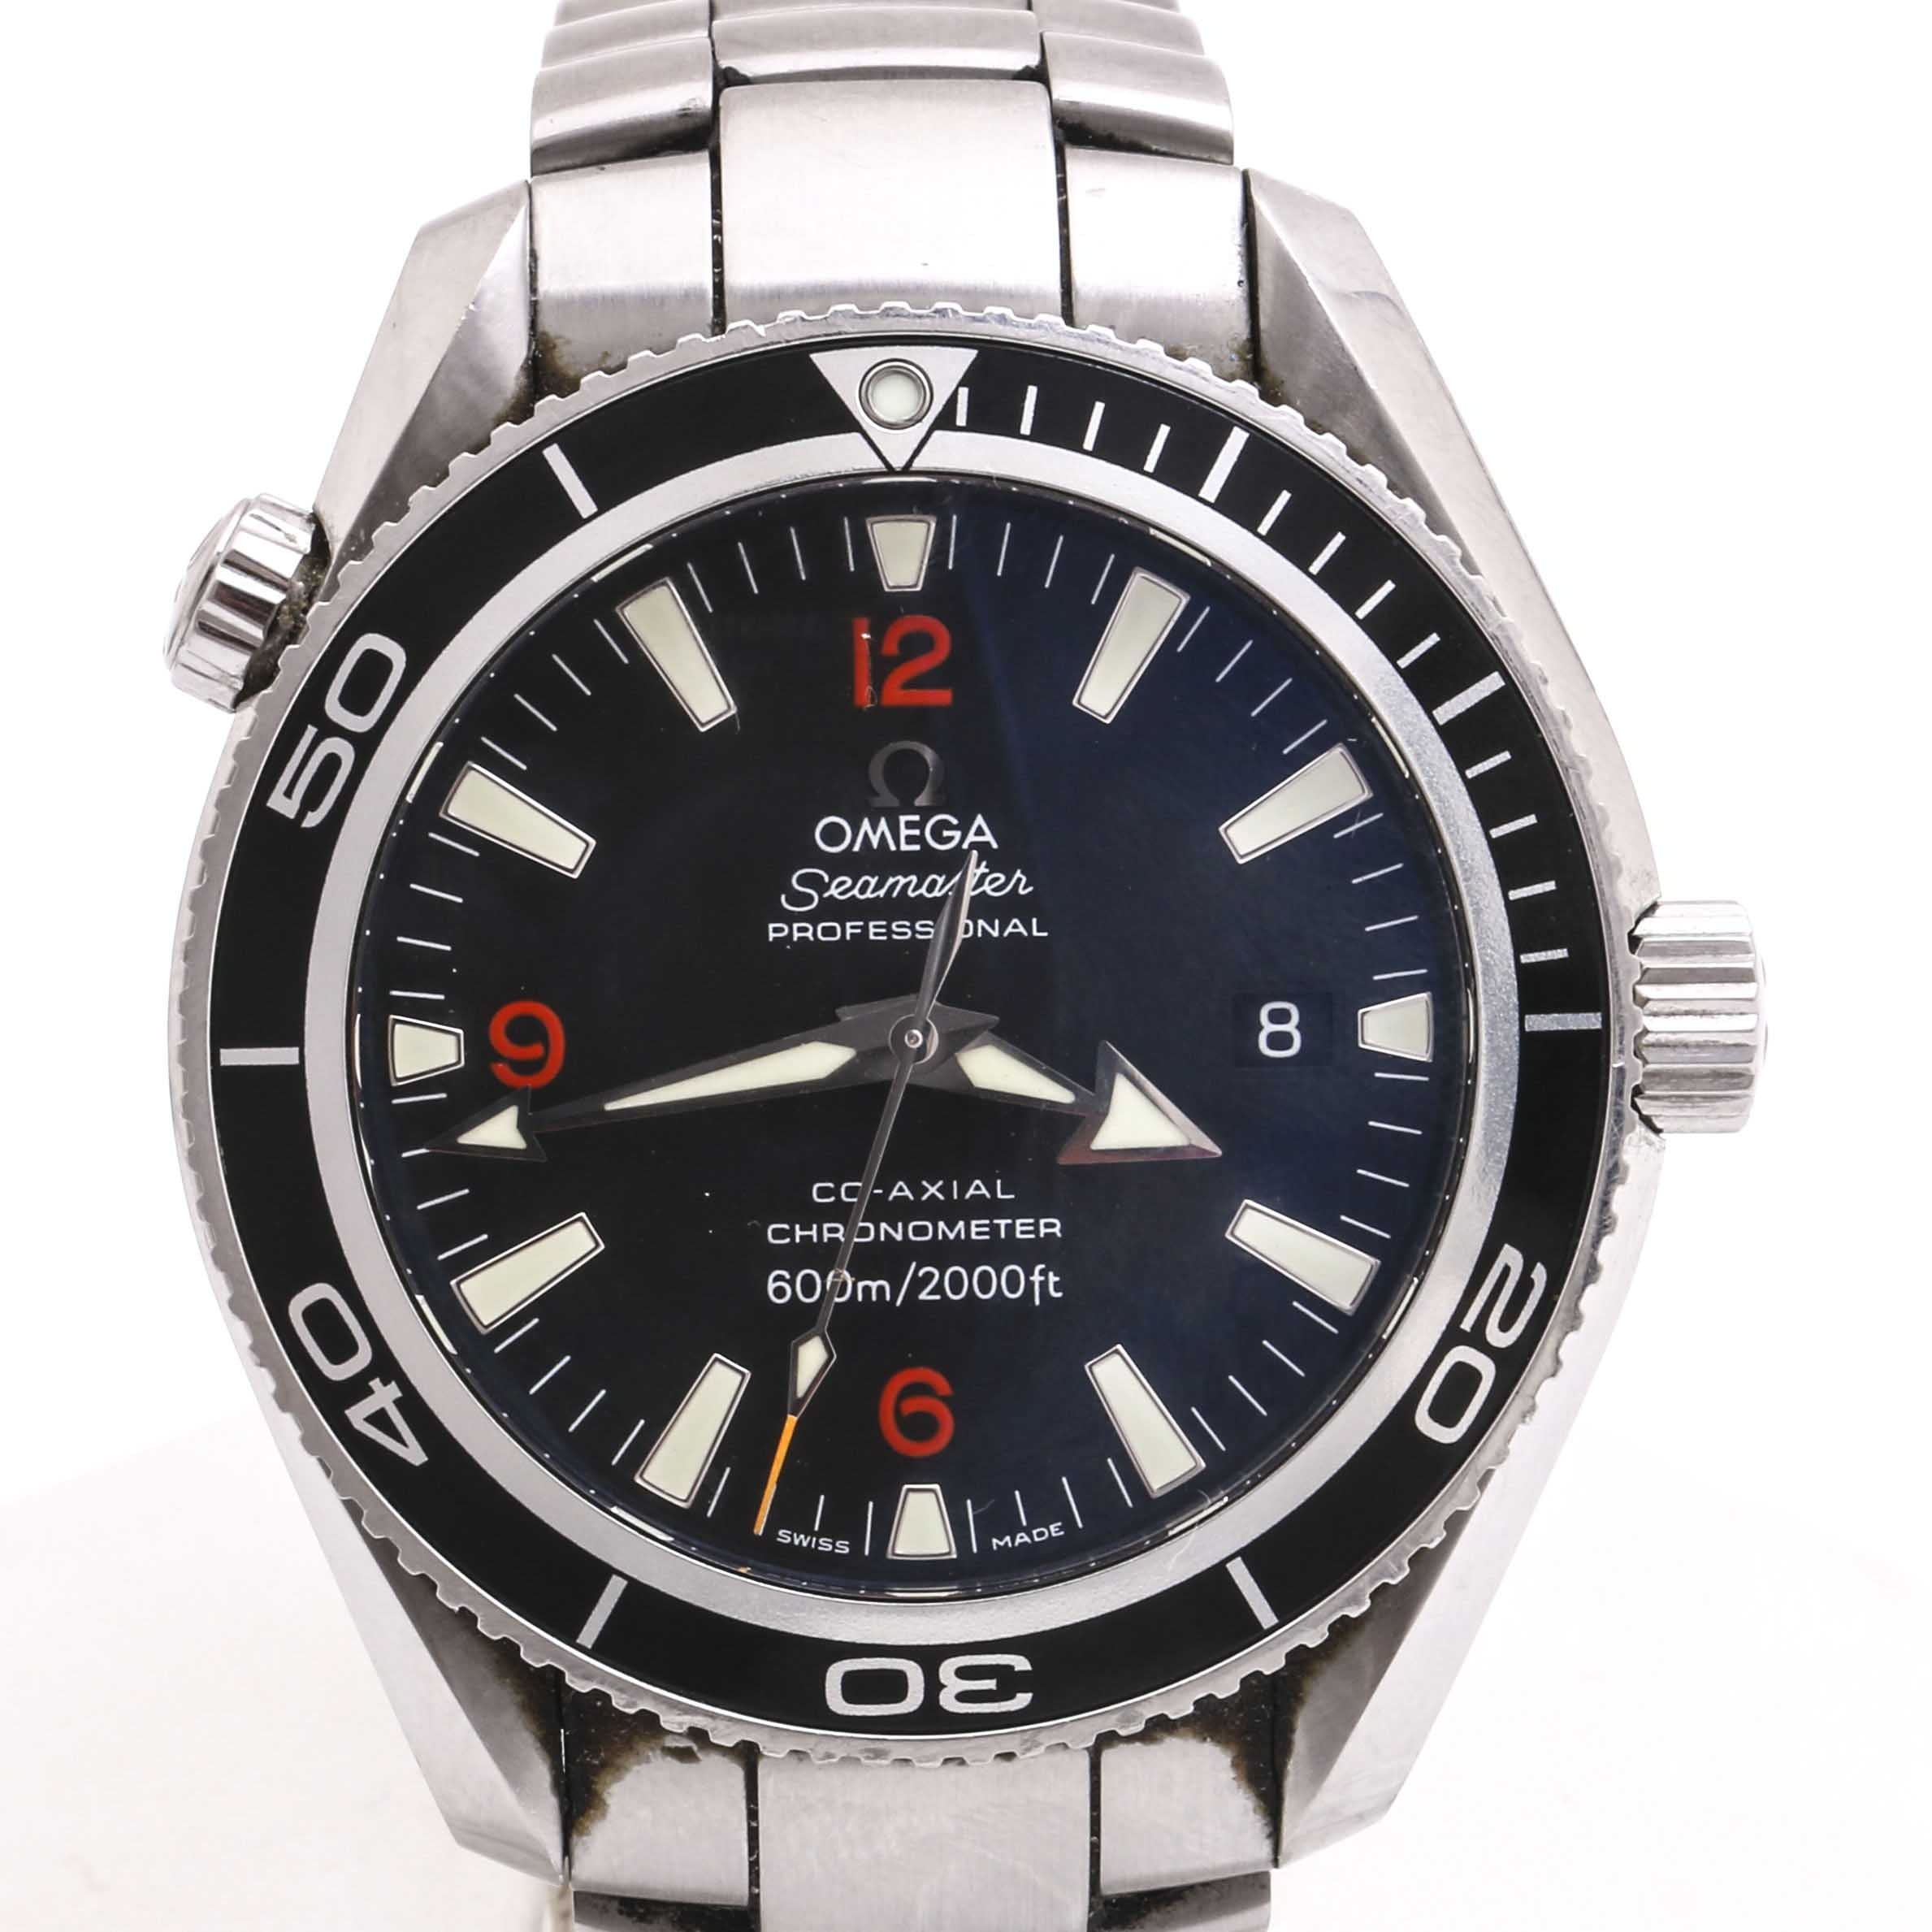 Omega Seamaster Professional Stainless Steel Wristwatch